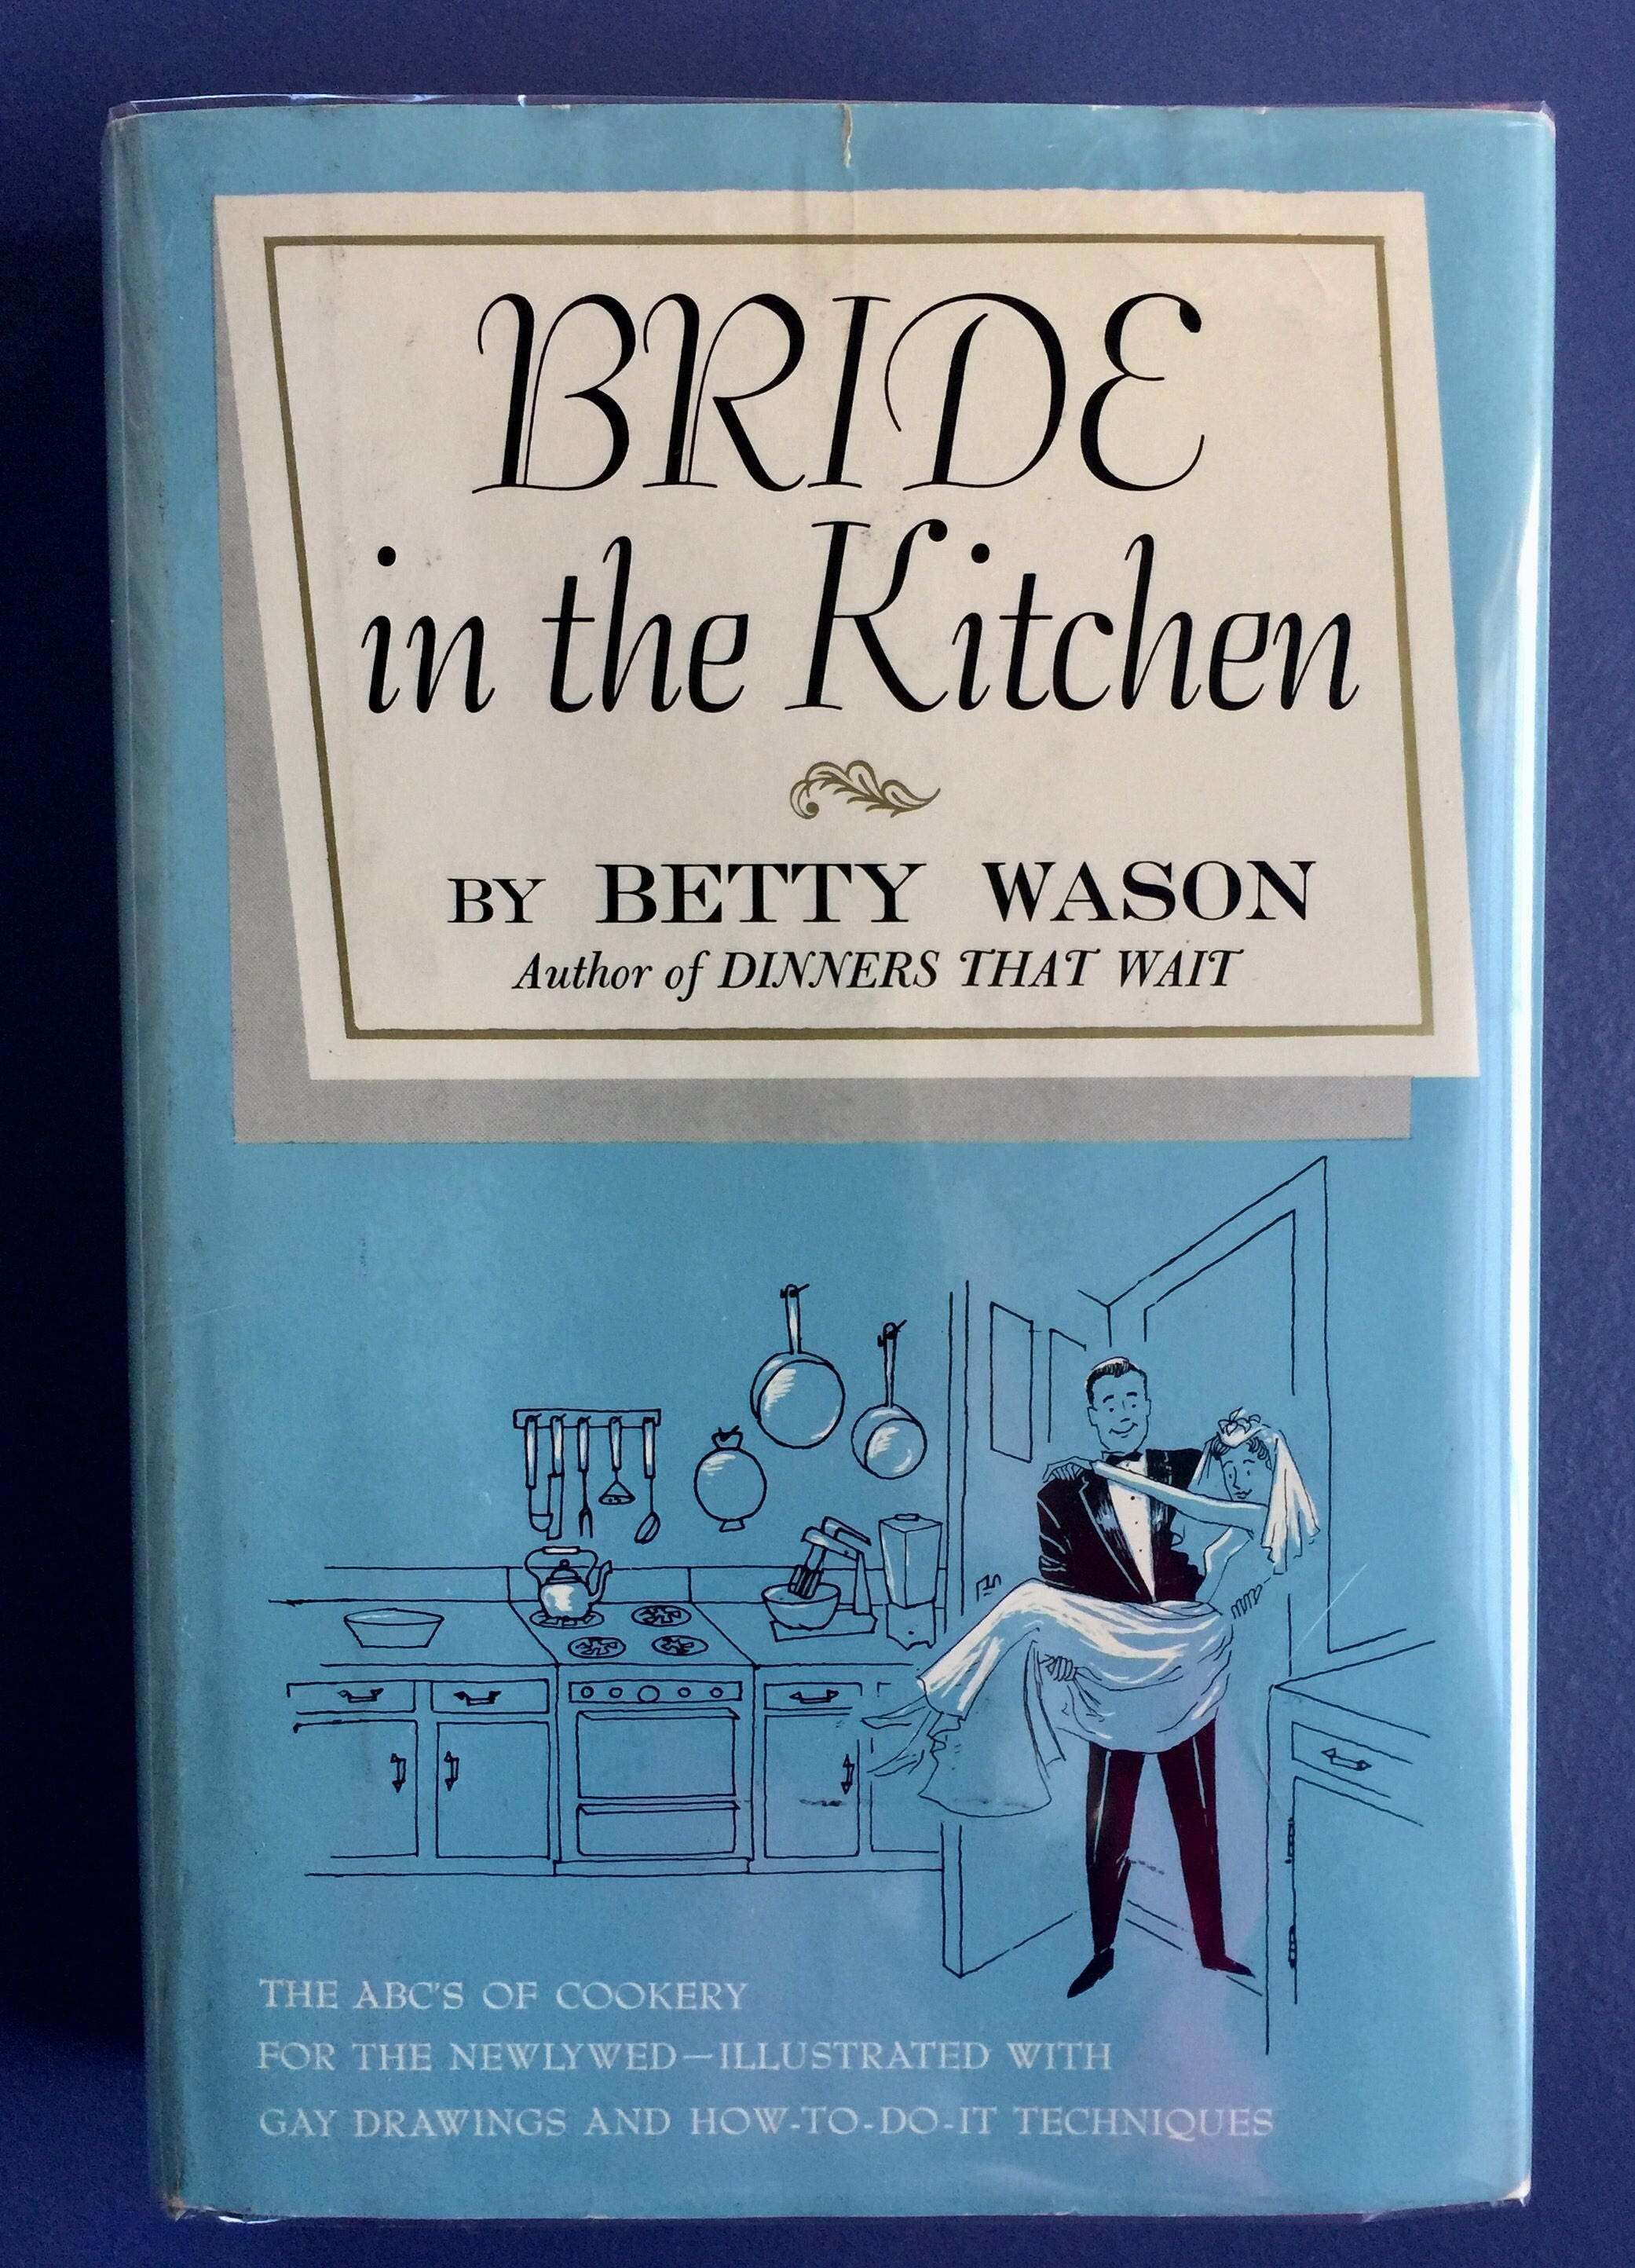 Bride In the Kitchen by Betty Wason, Stated First Edition, 1964